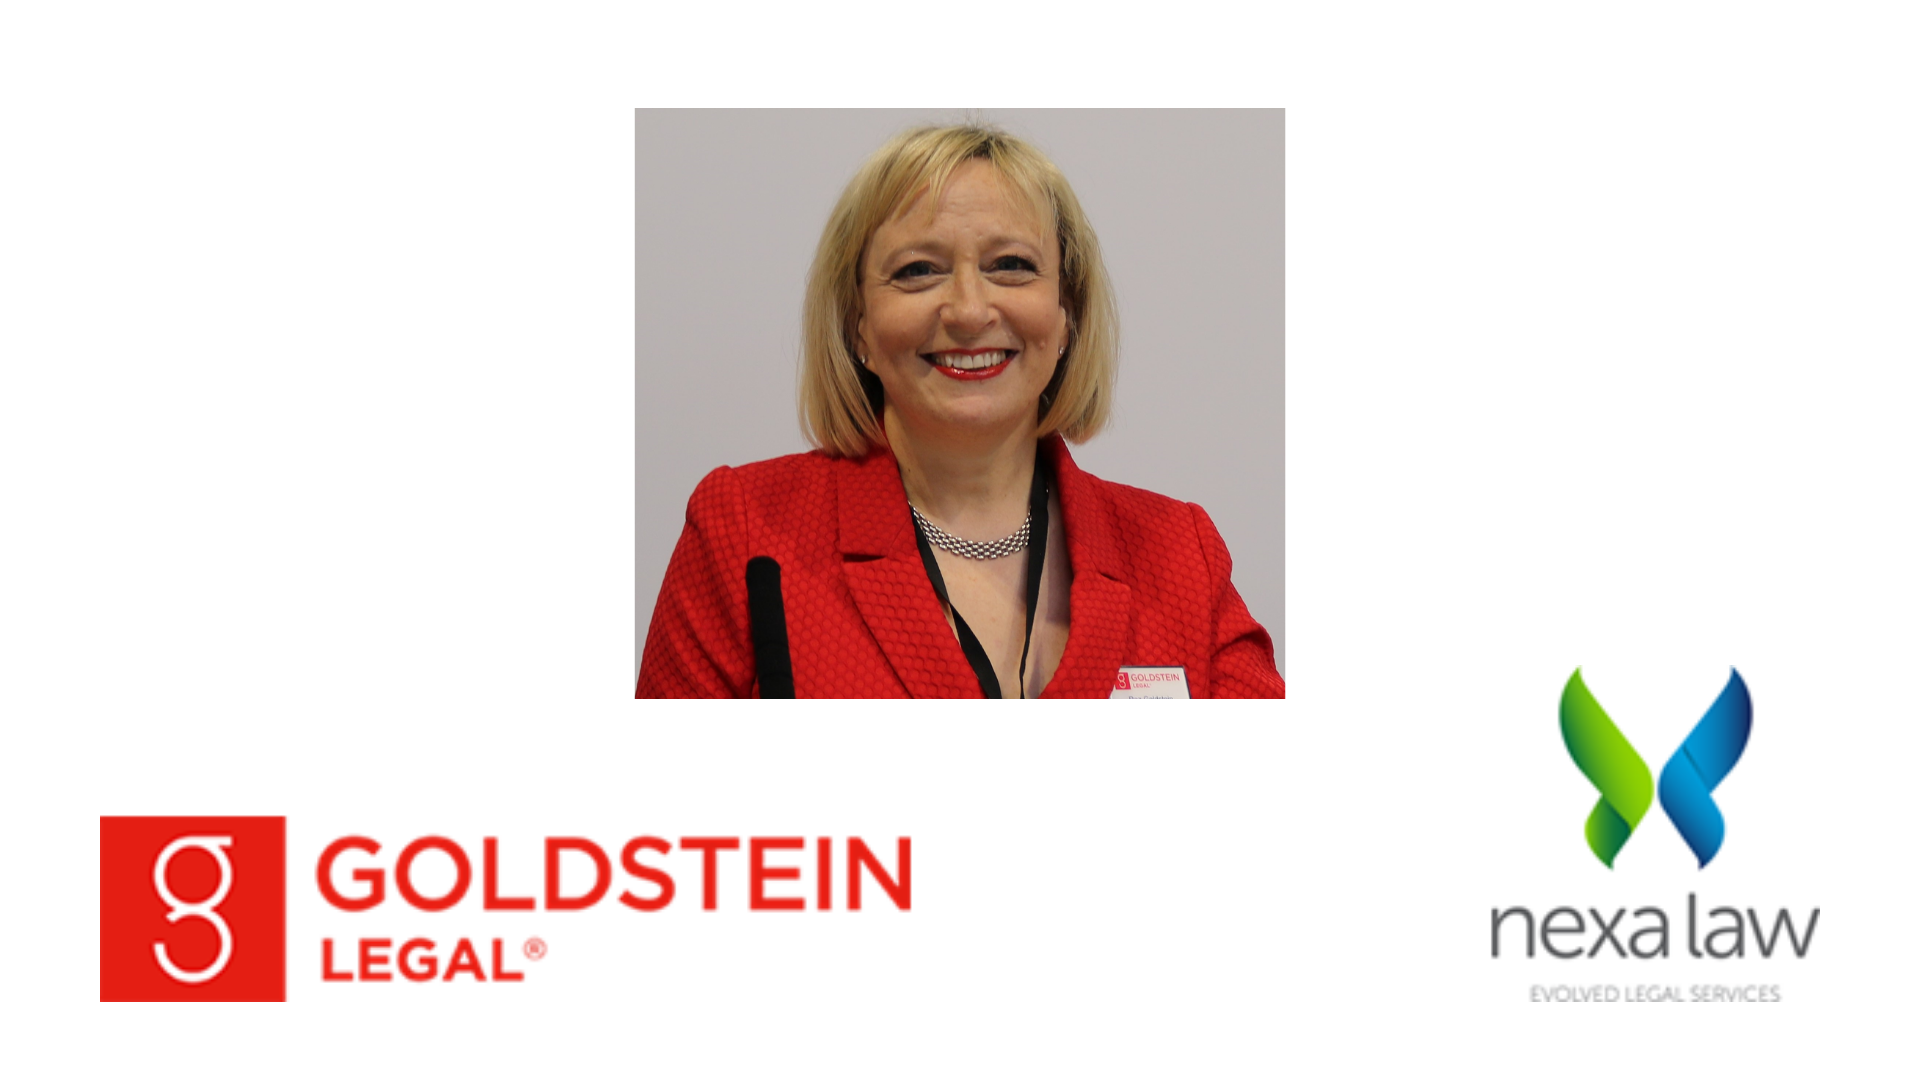 Goldstein Legal acquired by nexa law